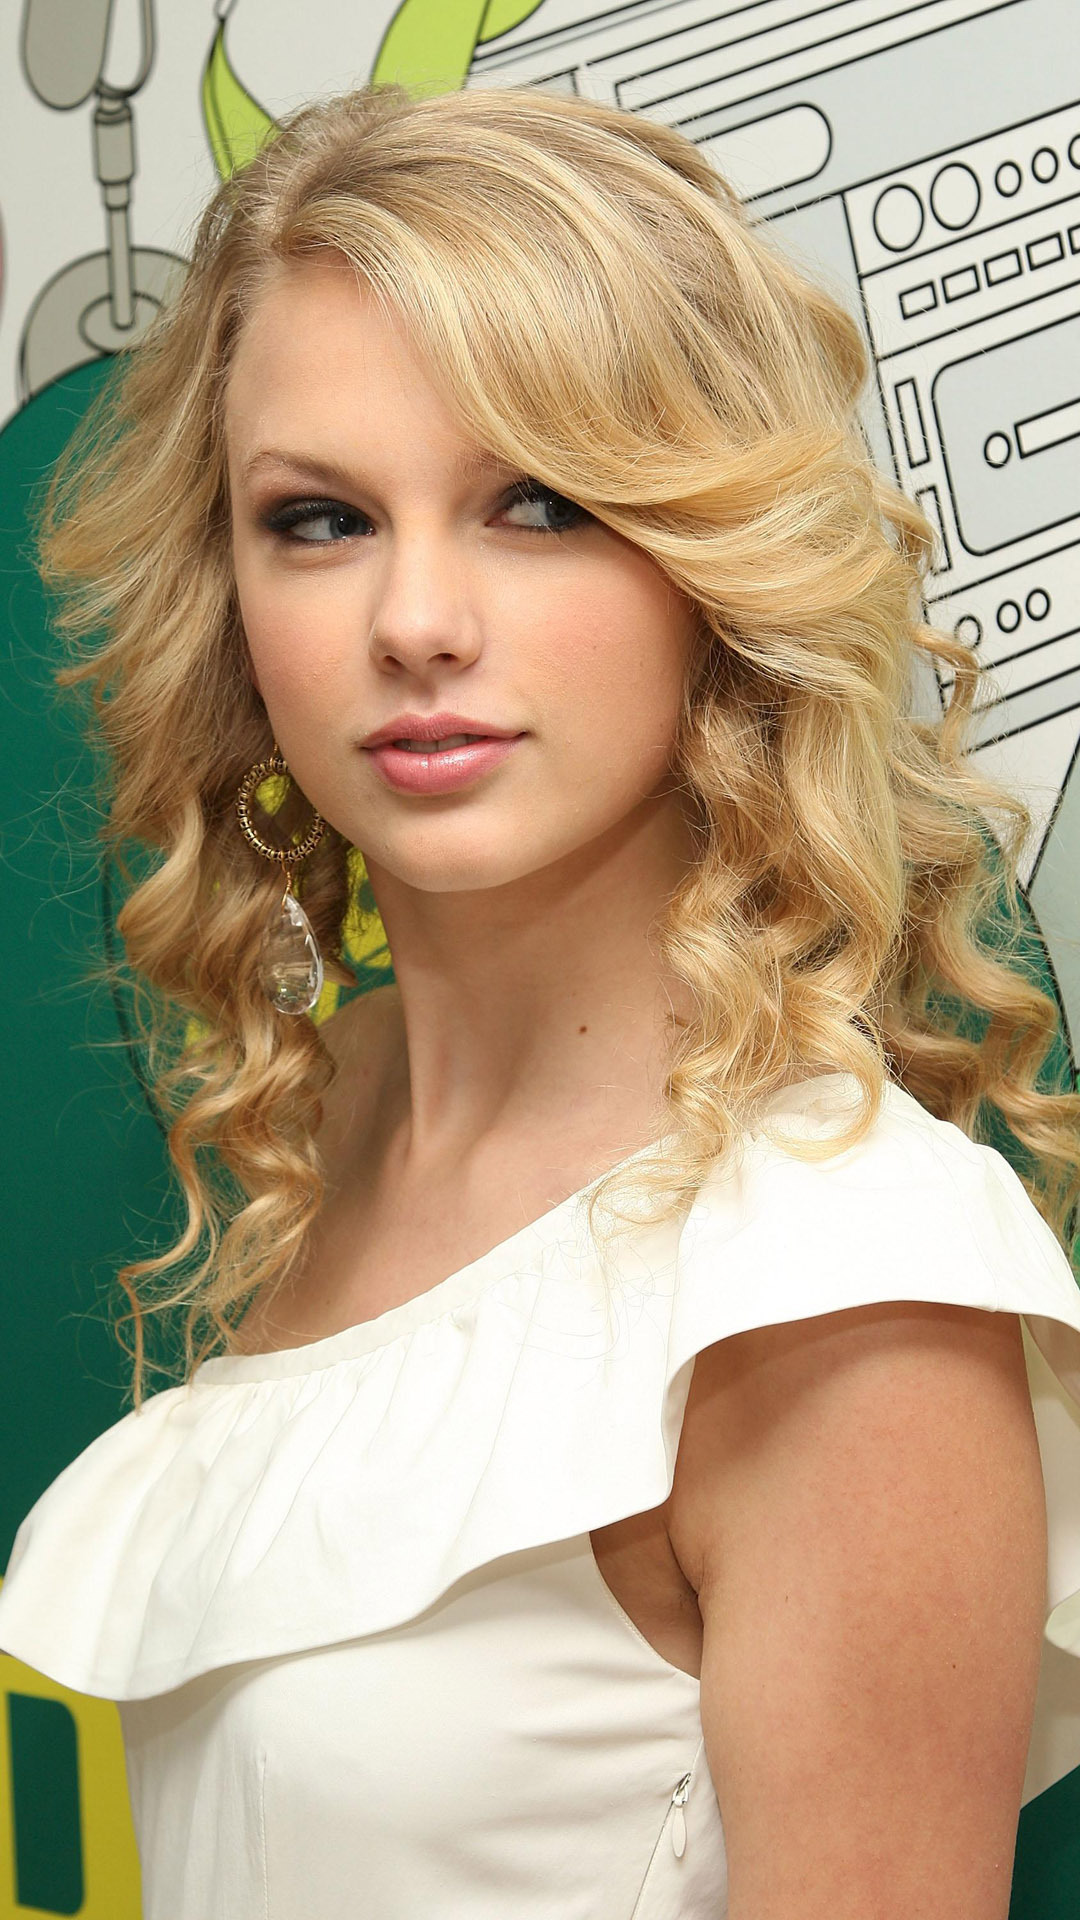 taylor swift mobile phone wallpaper | newwallpapers